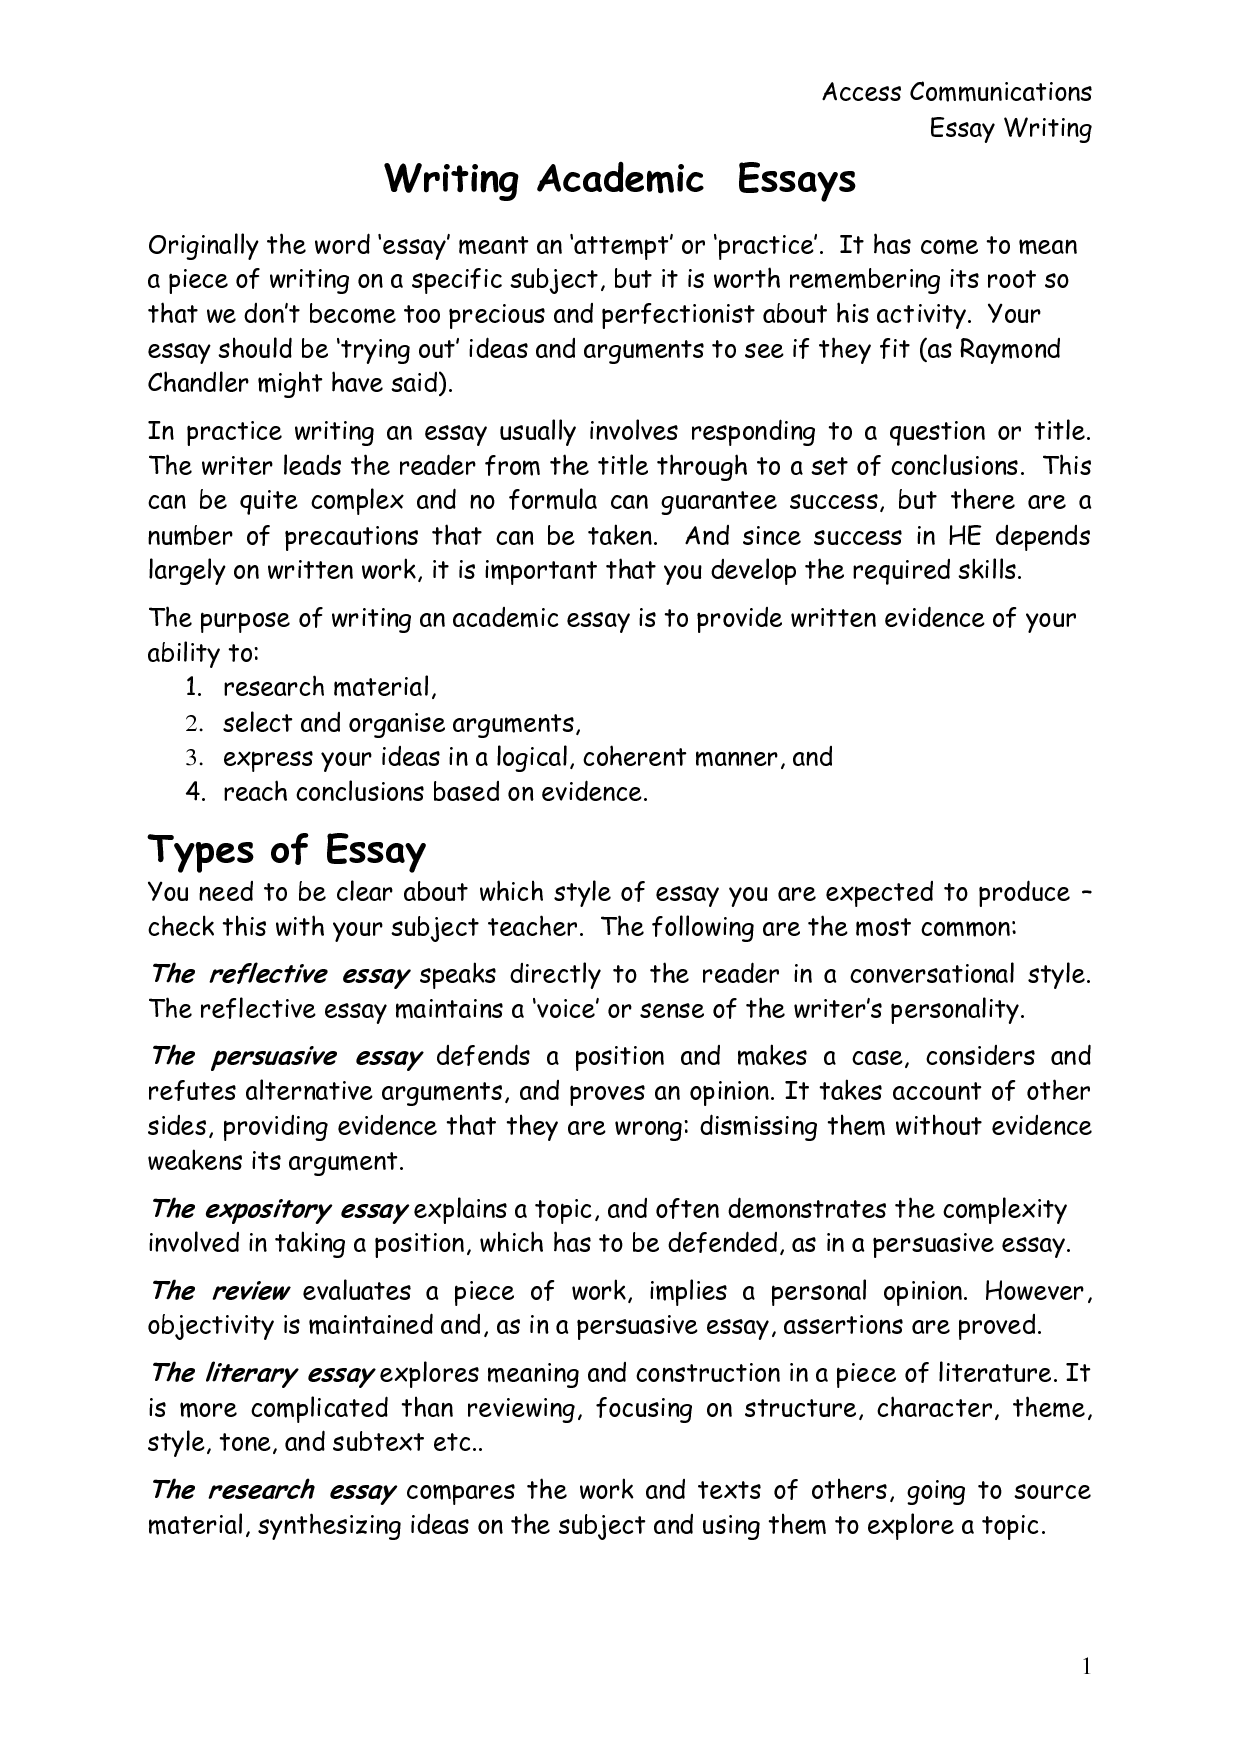 016 Reflective Essay On Academic Writings Beautiful Examples English Pdf For Middle School Writing Class Full